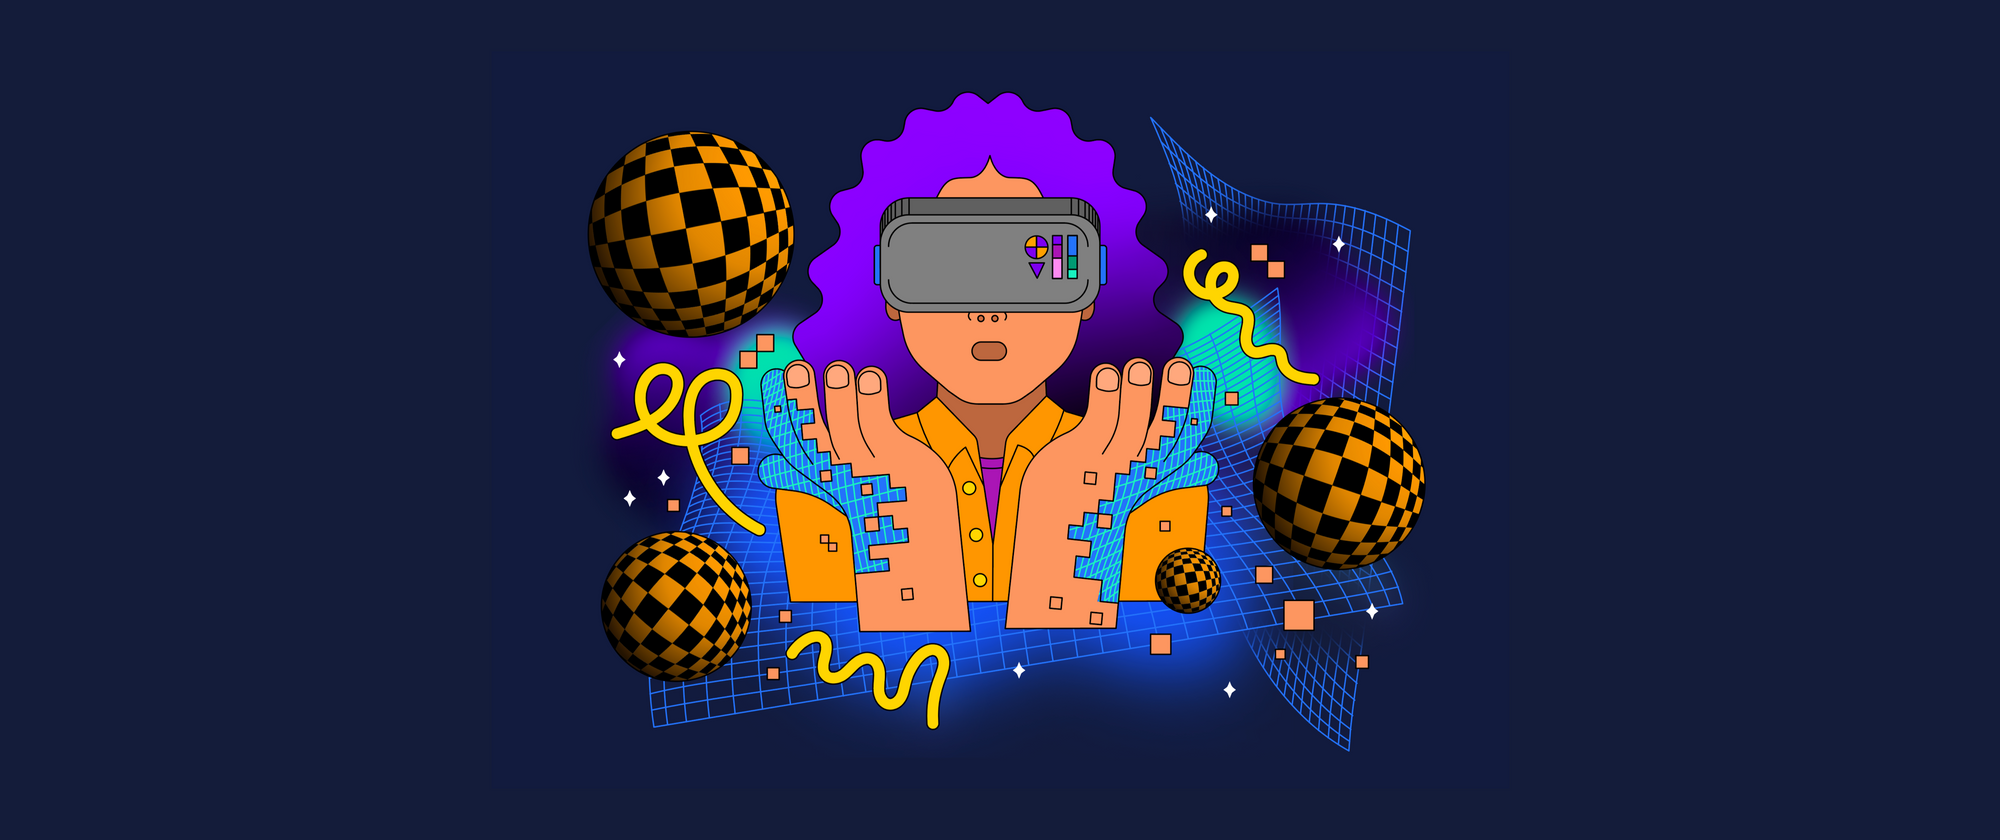 Introducing Learn A-Frame: A VR course you can take… in VR!